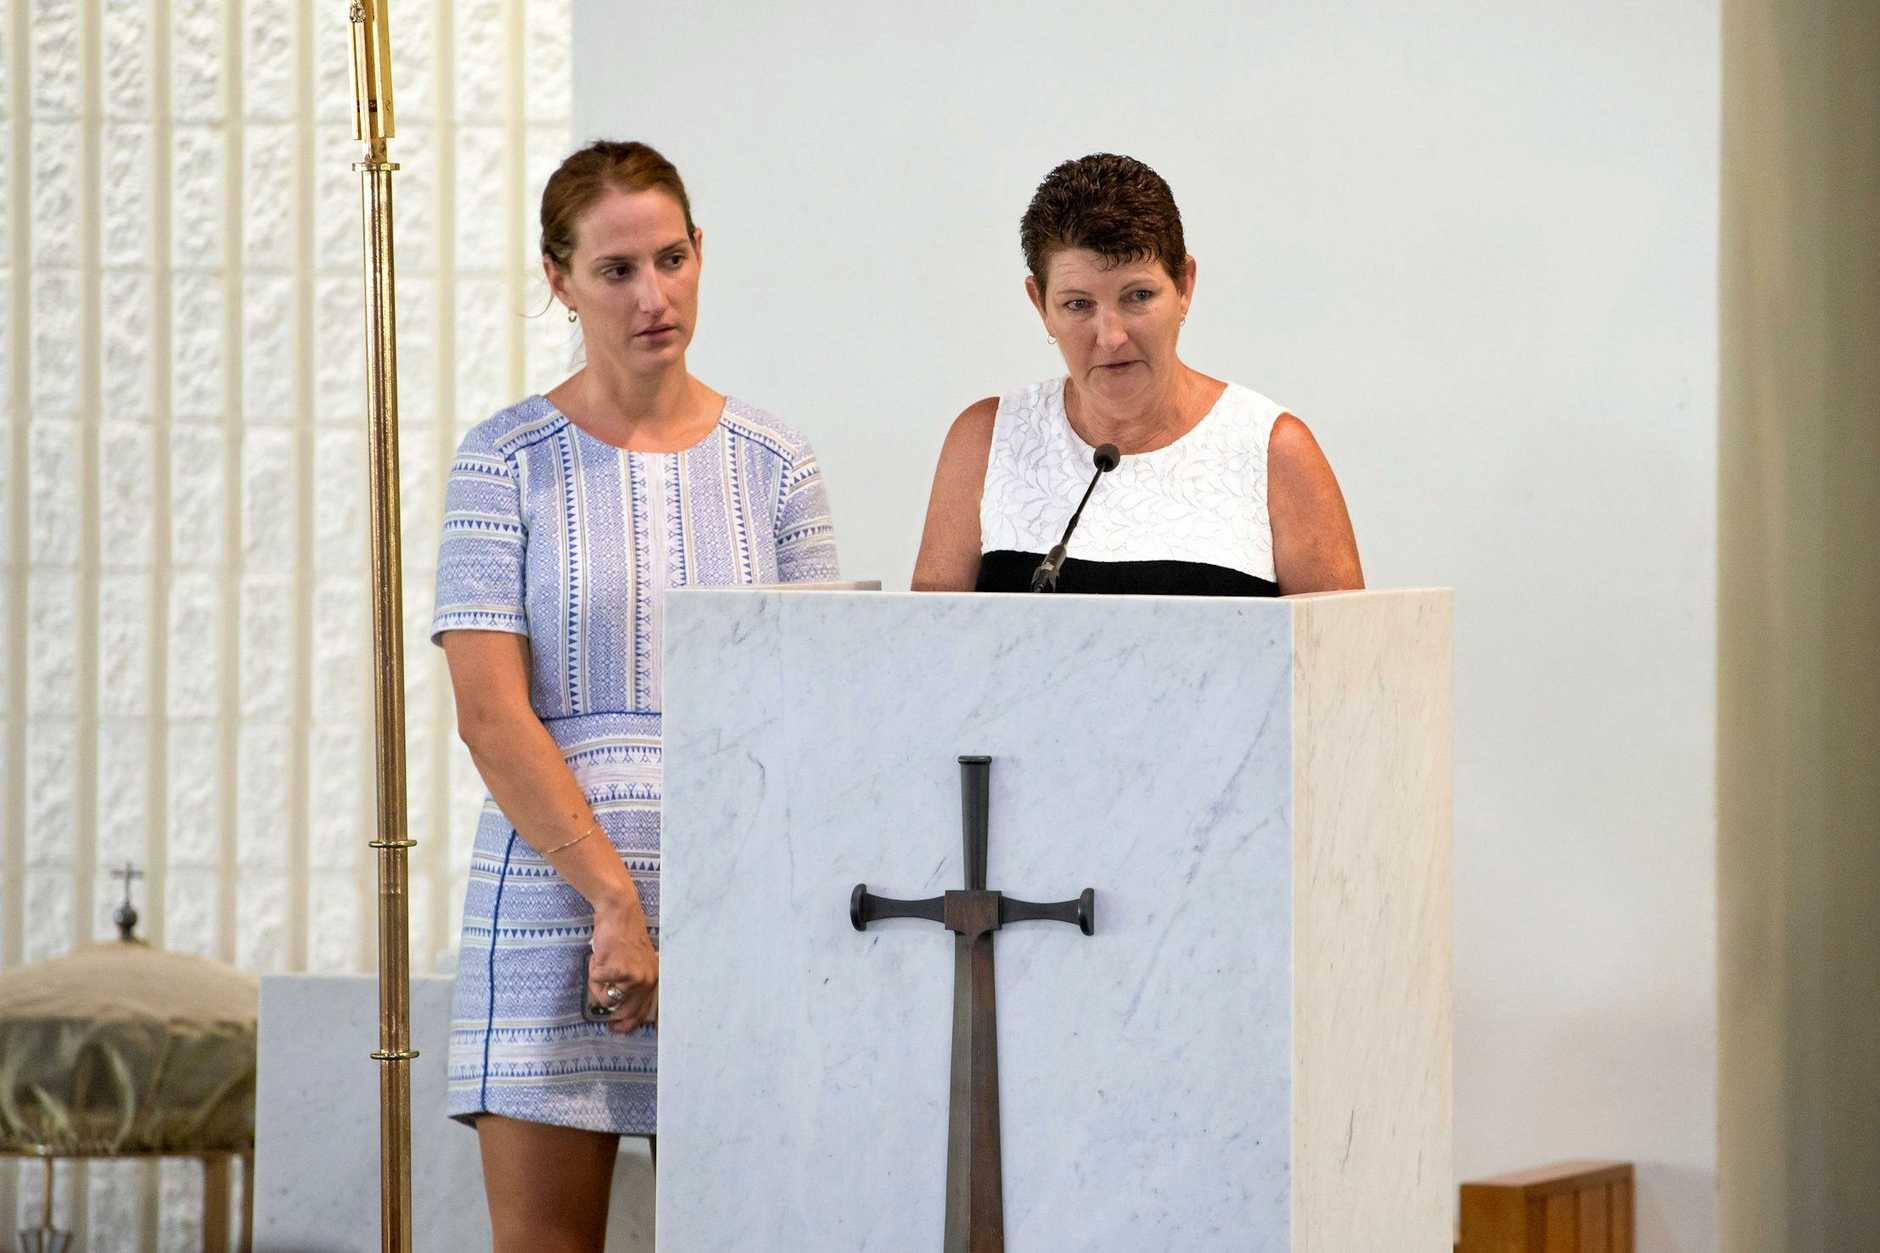 Craig McCulloch's partner, Heather Ball, and mother, Mary McCulloch, spoke fondly of the paramedic during a public funeral in Mackay on Thursday.